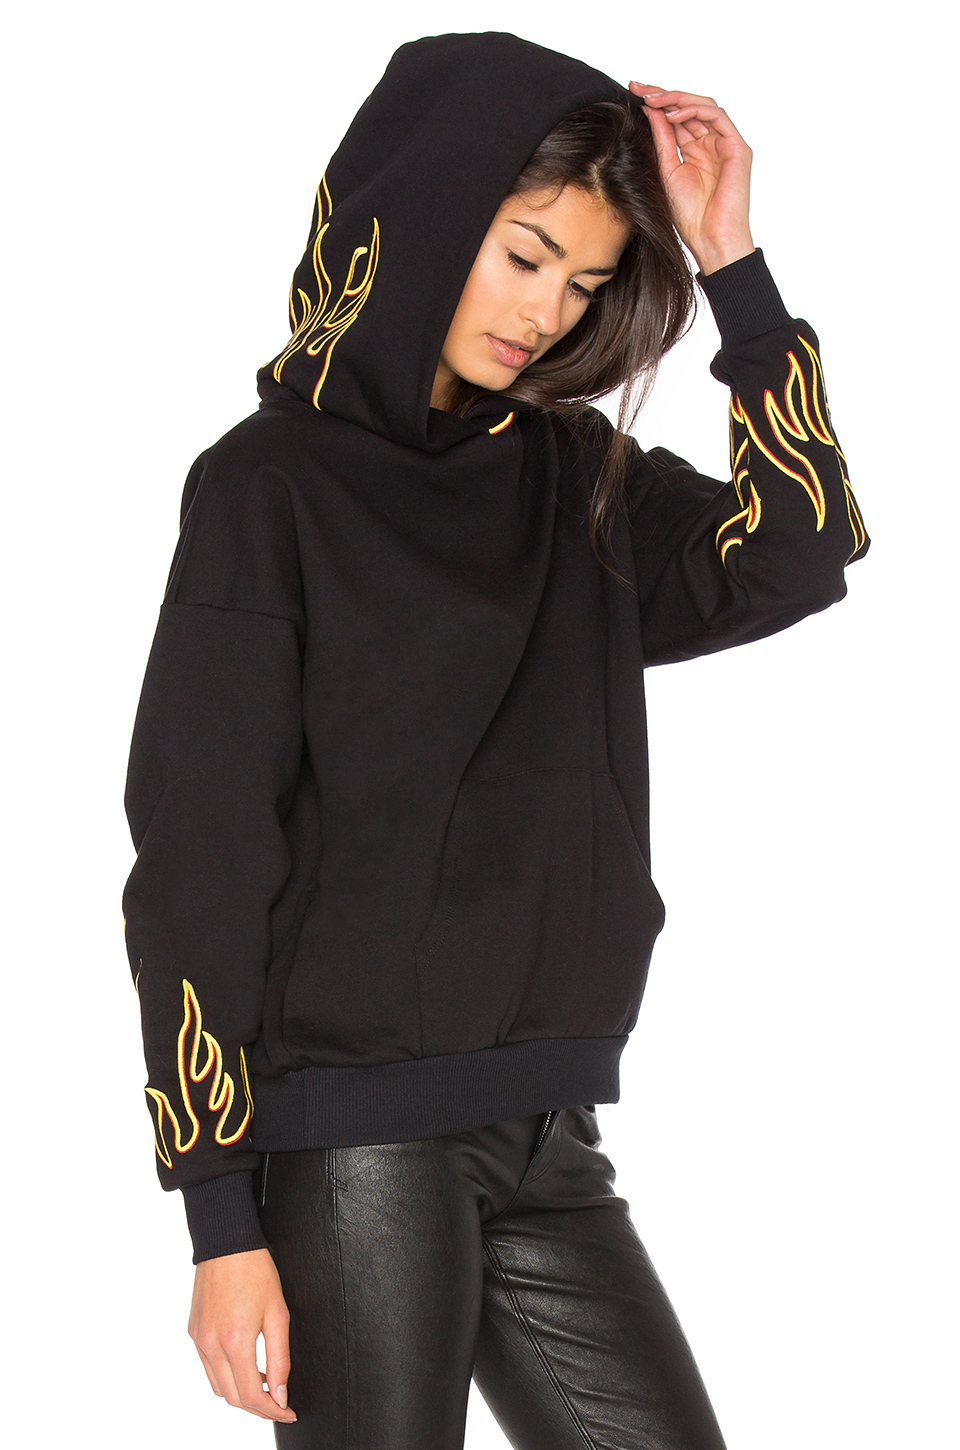 6eed4815b8aadc 9 Hoodies That Are Actually Really Chic - FabFitFun